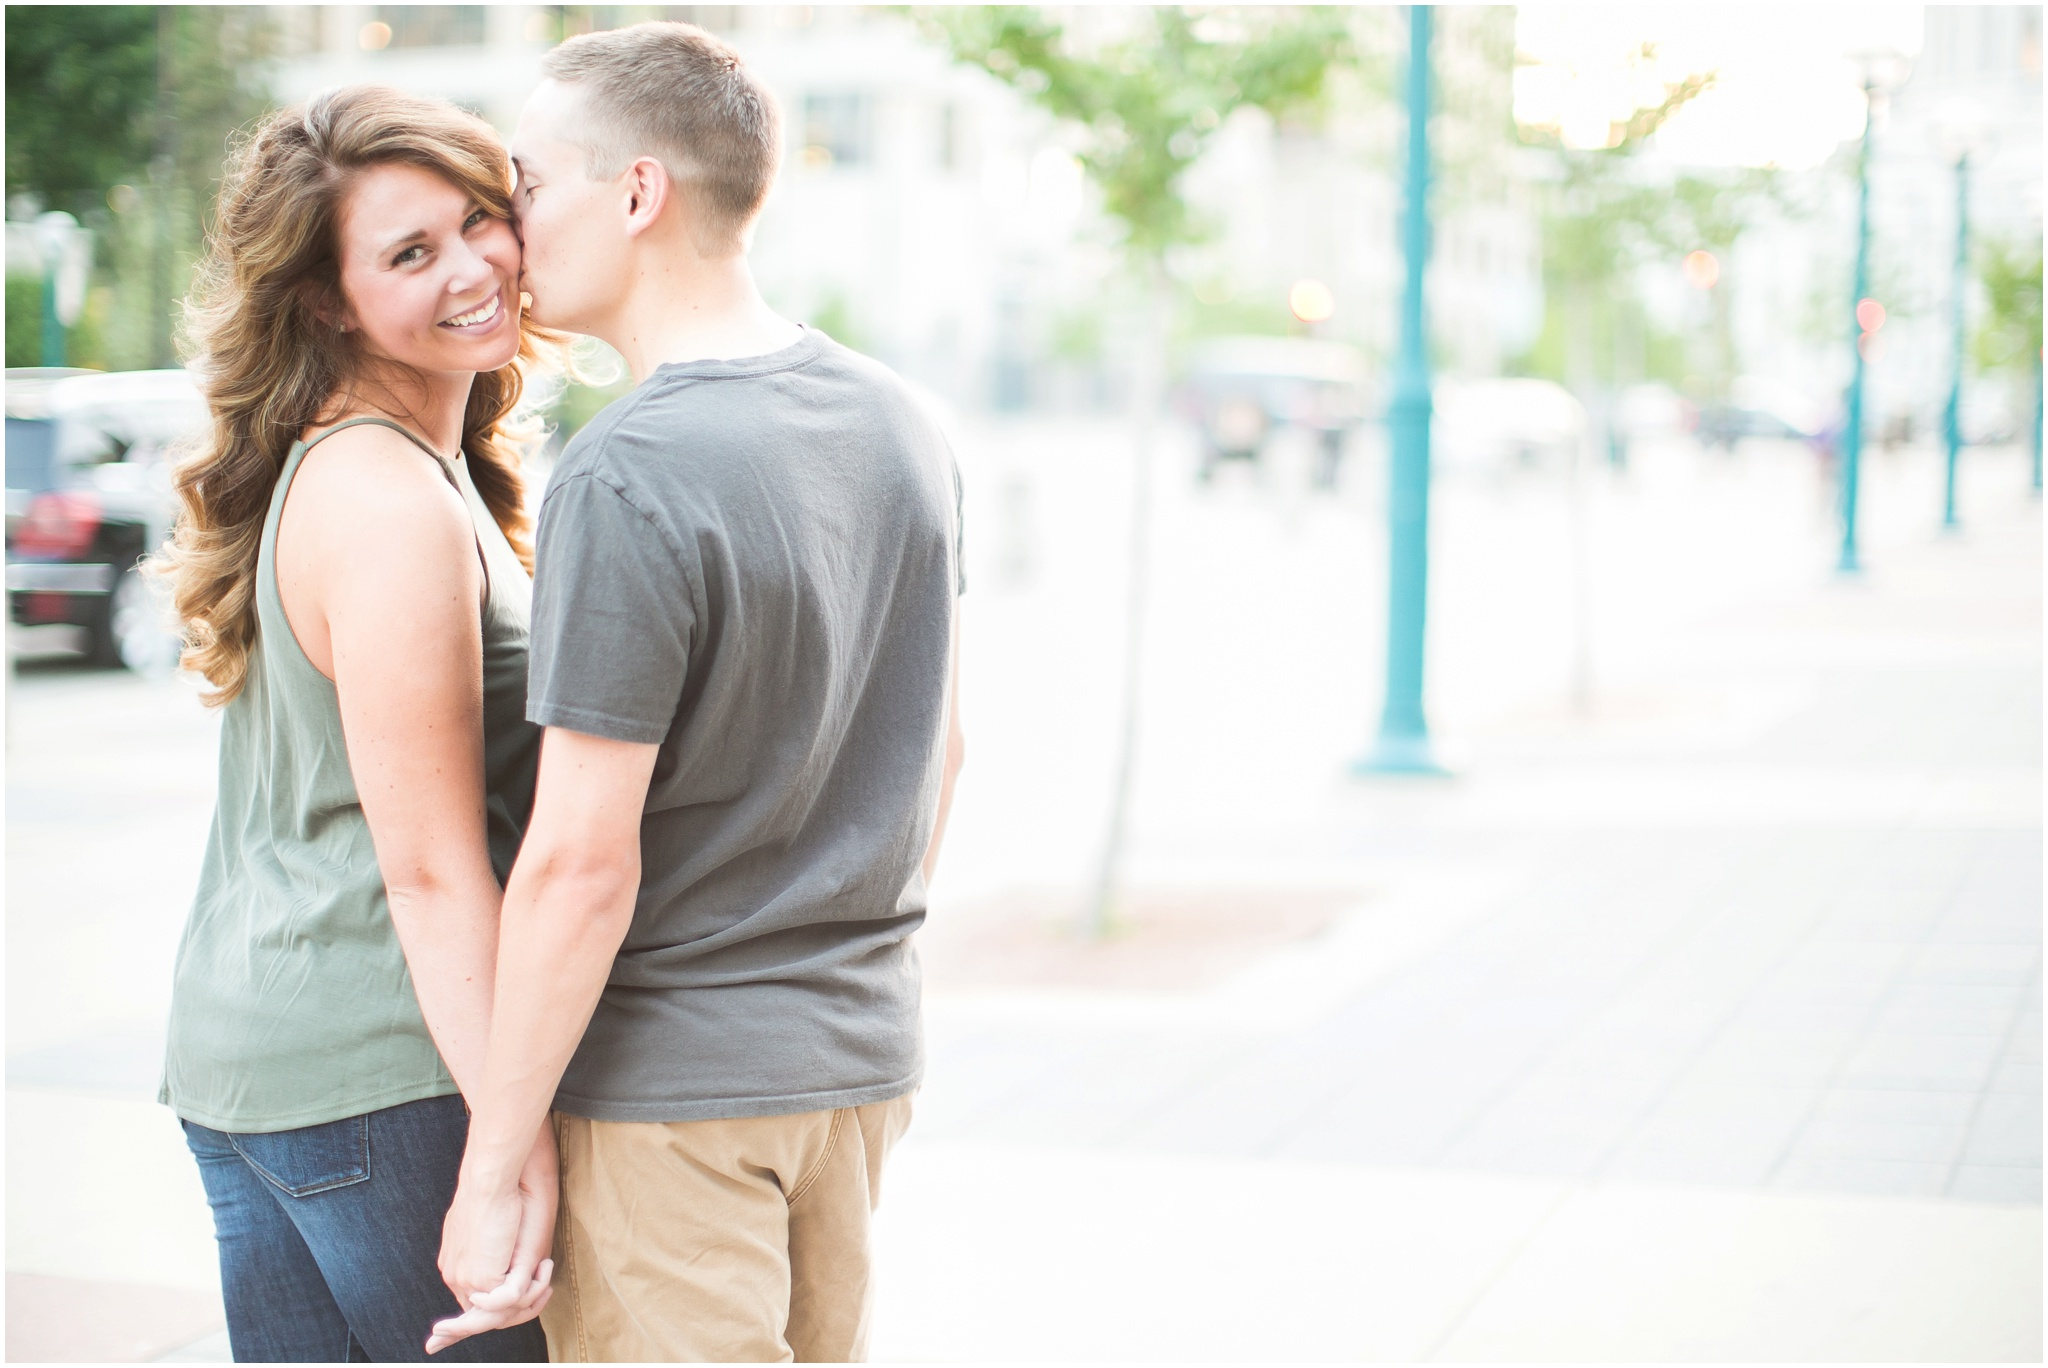 Downtown_Madison_Wisconsin_Engagement_Session_Waterfront_Monona_Terrace_0490.jpg